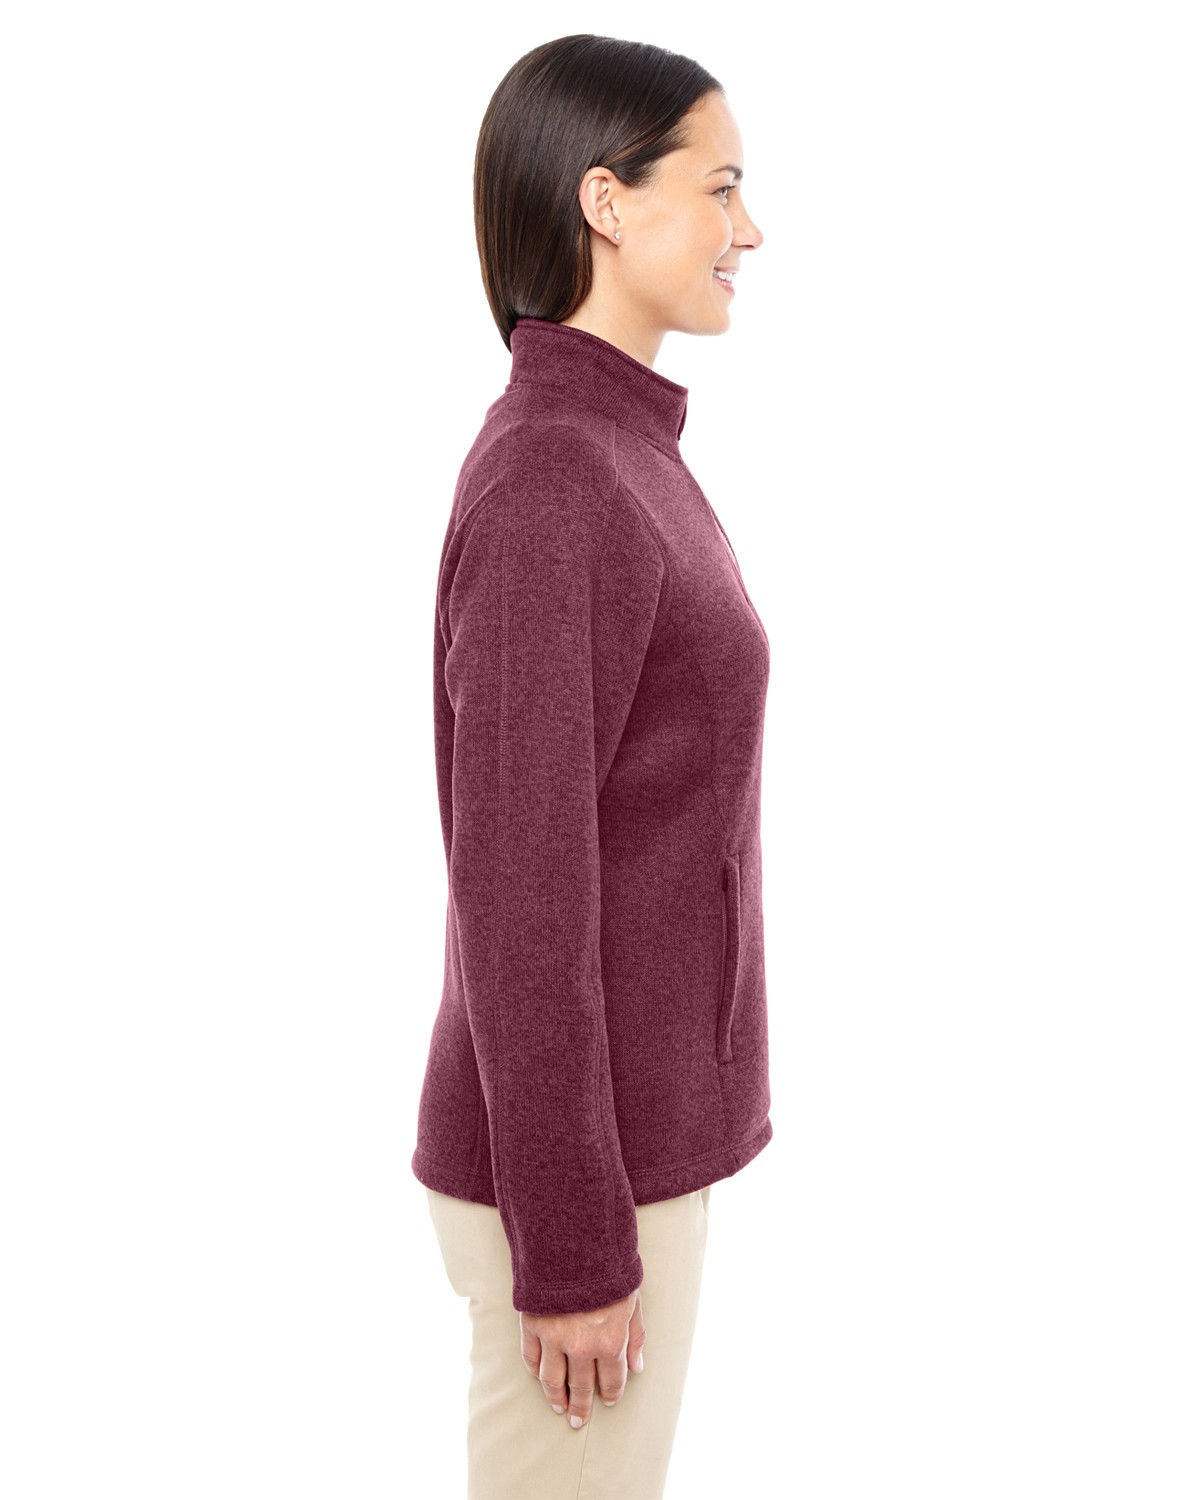 DG793W Devon & Jones BURGUNDY HEATHER